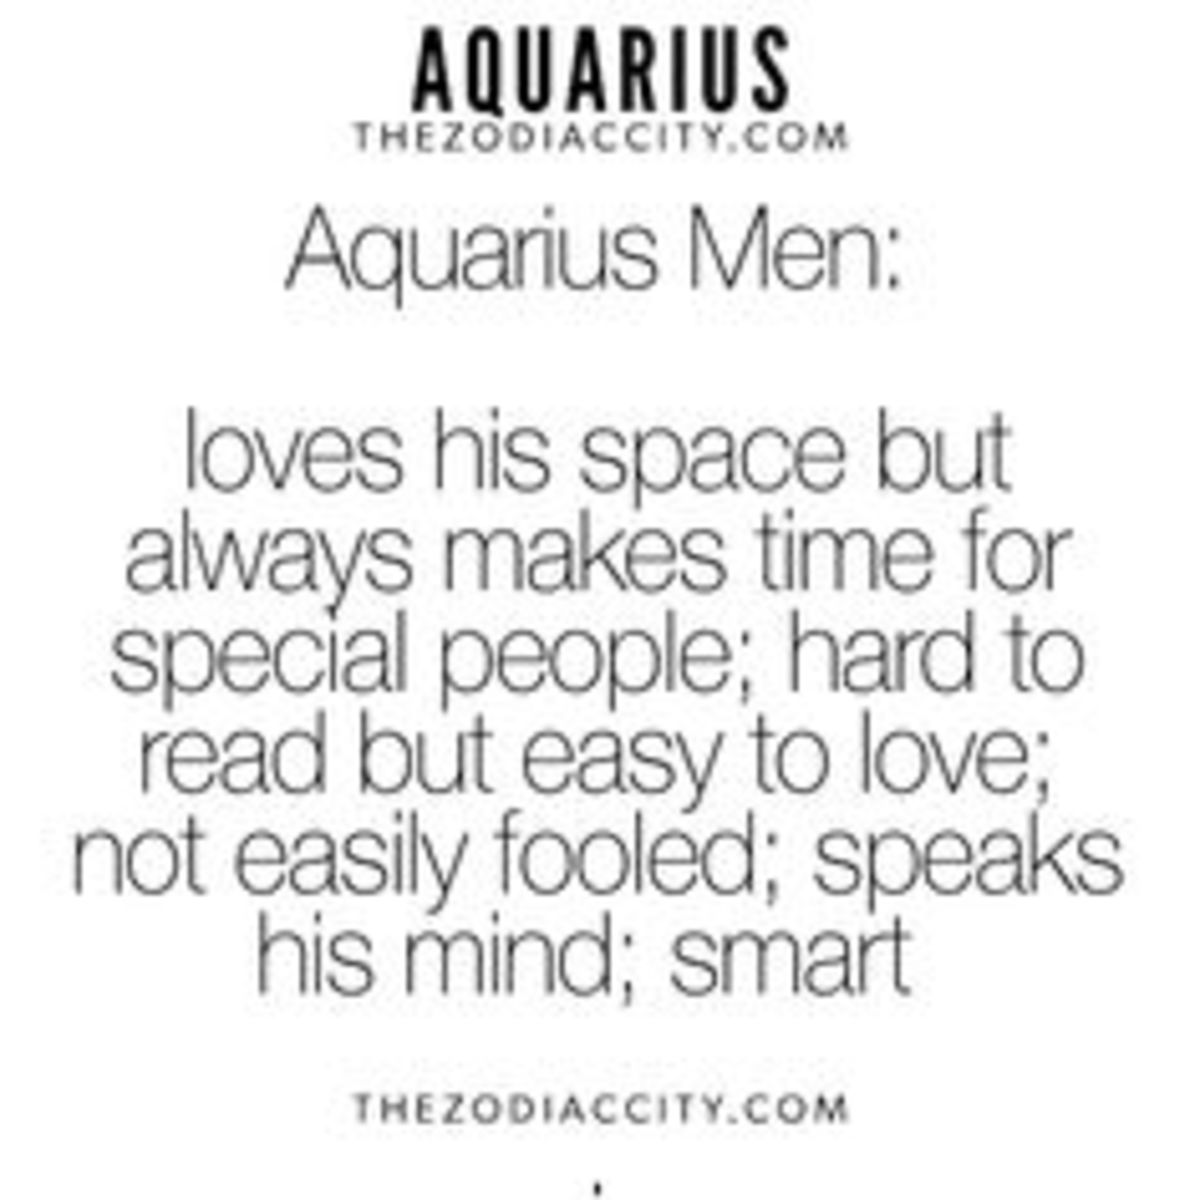 Dating an aquarius male